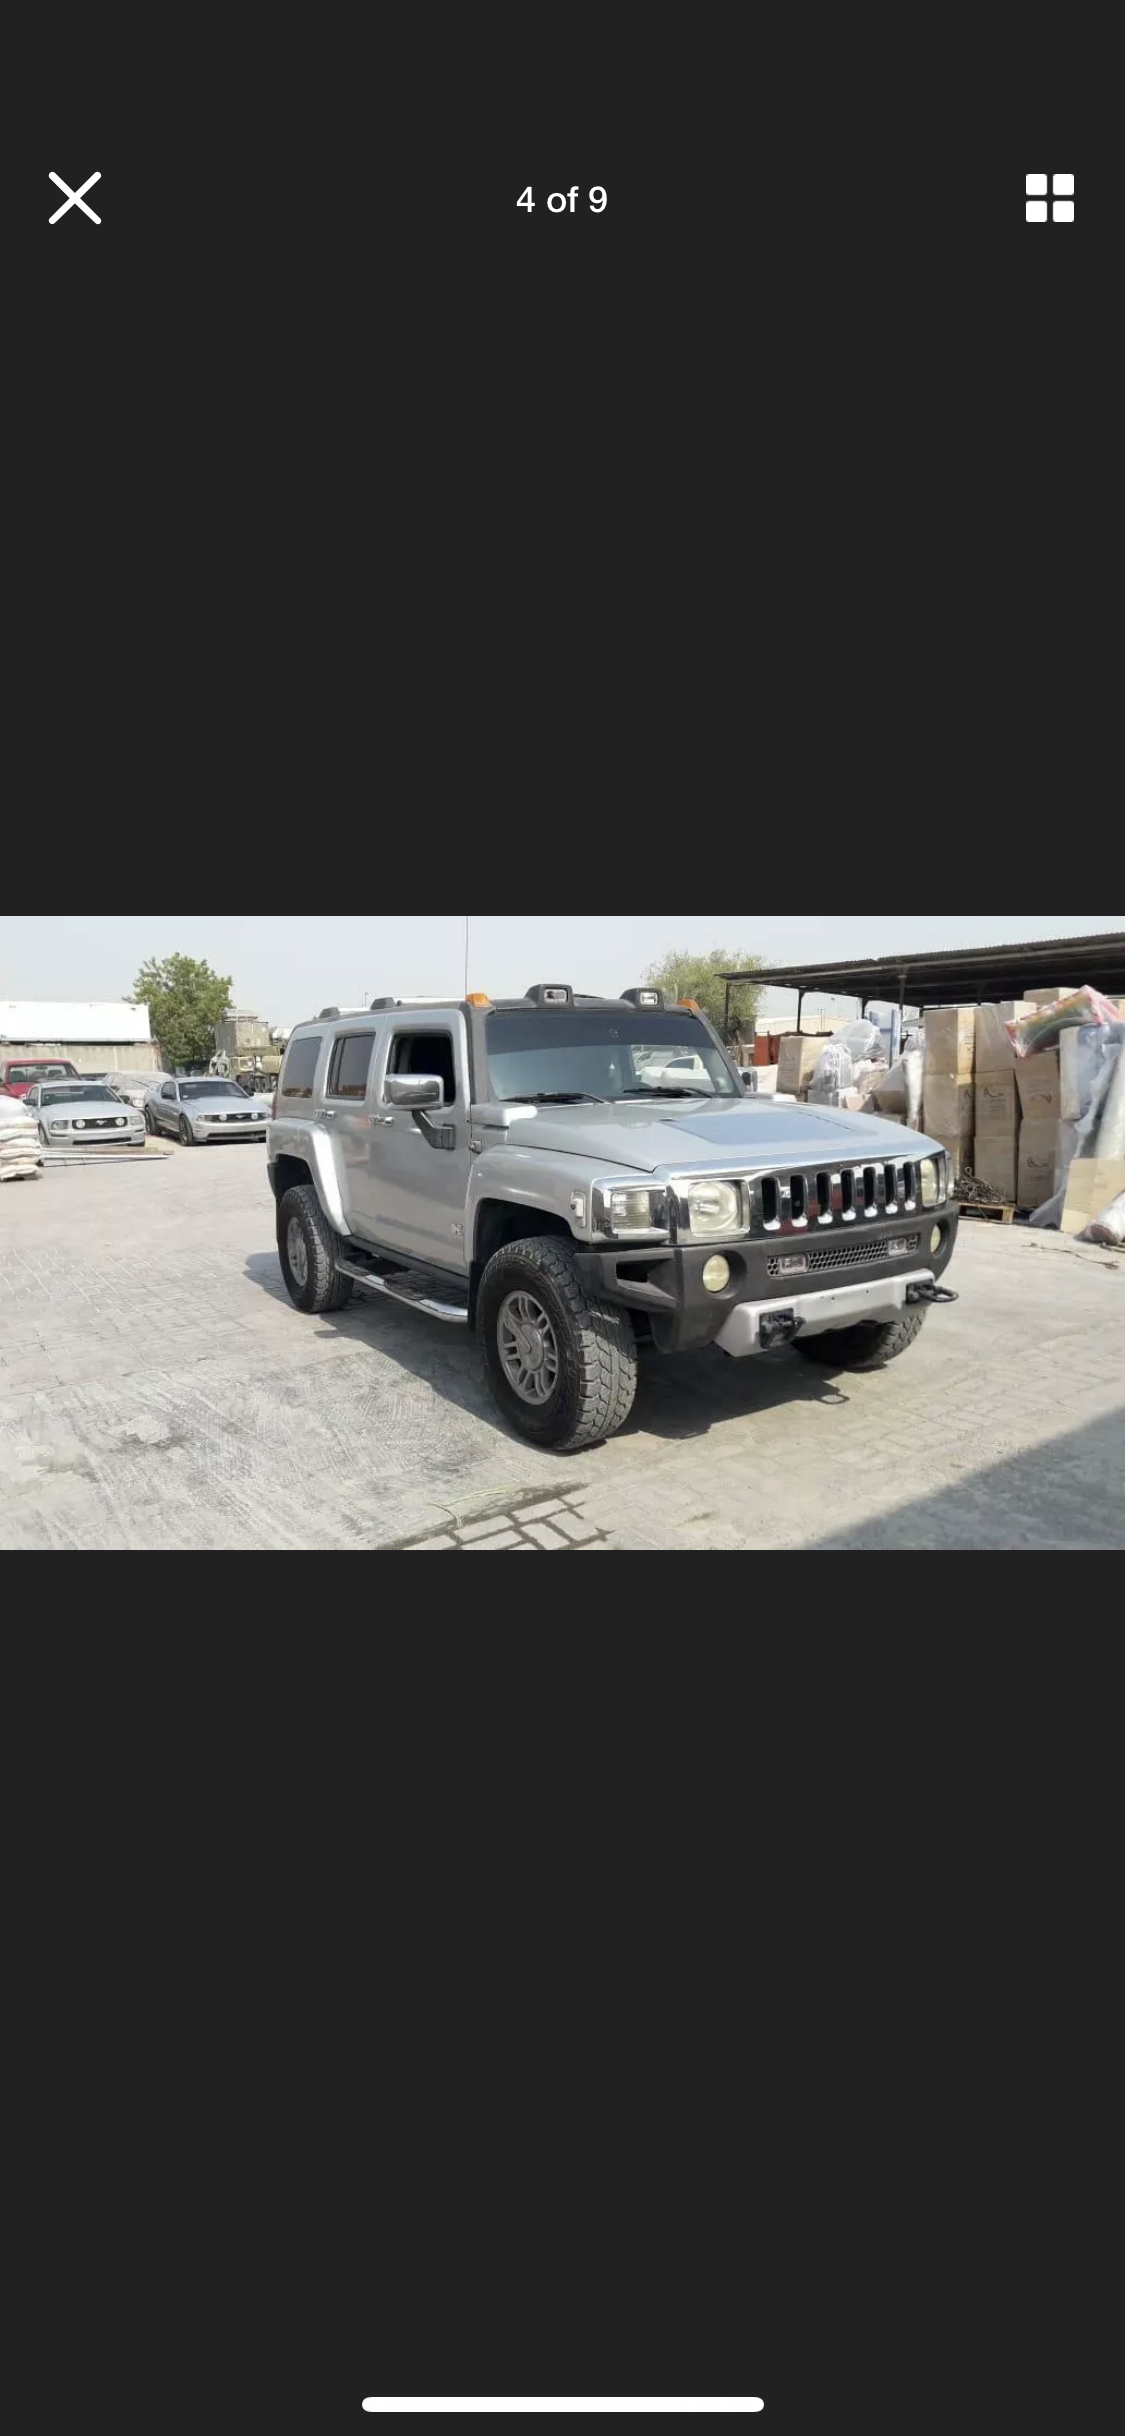 2008 HUMMER H3 3.5 LEFT HAND DRIVE SILVER LHD FRESH IMPORT A For Sale (picture 4 of 6)